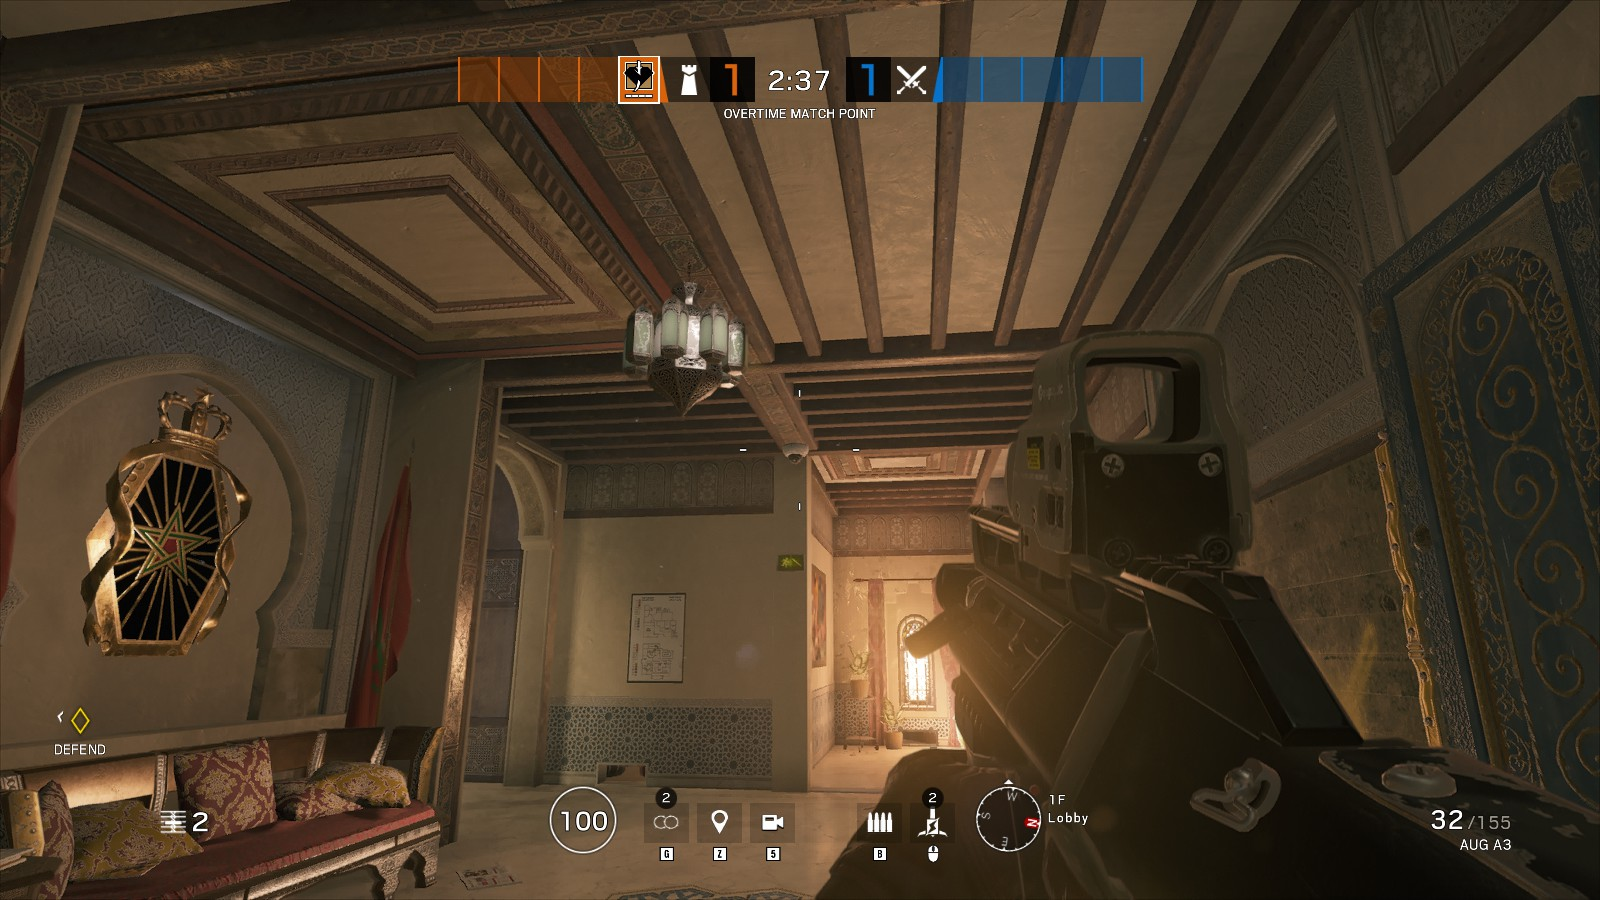 Rainbow Six Siege Fortress map: how to defend, how to attack, tips